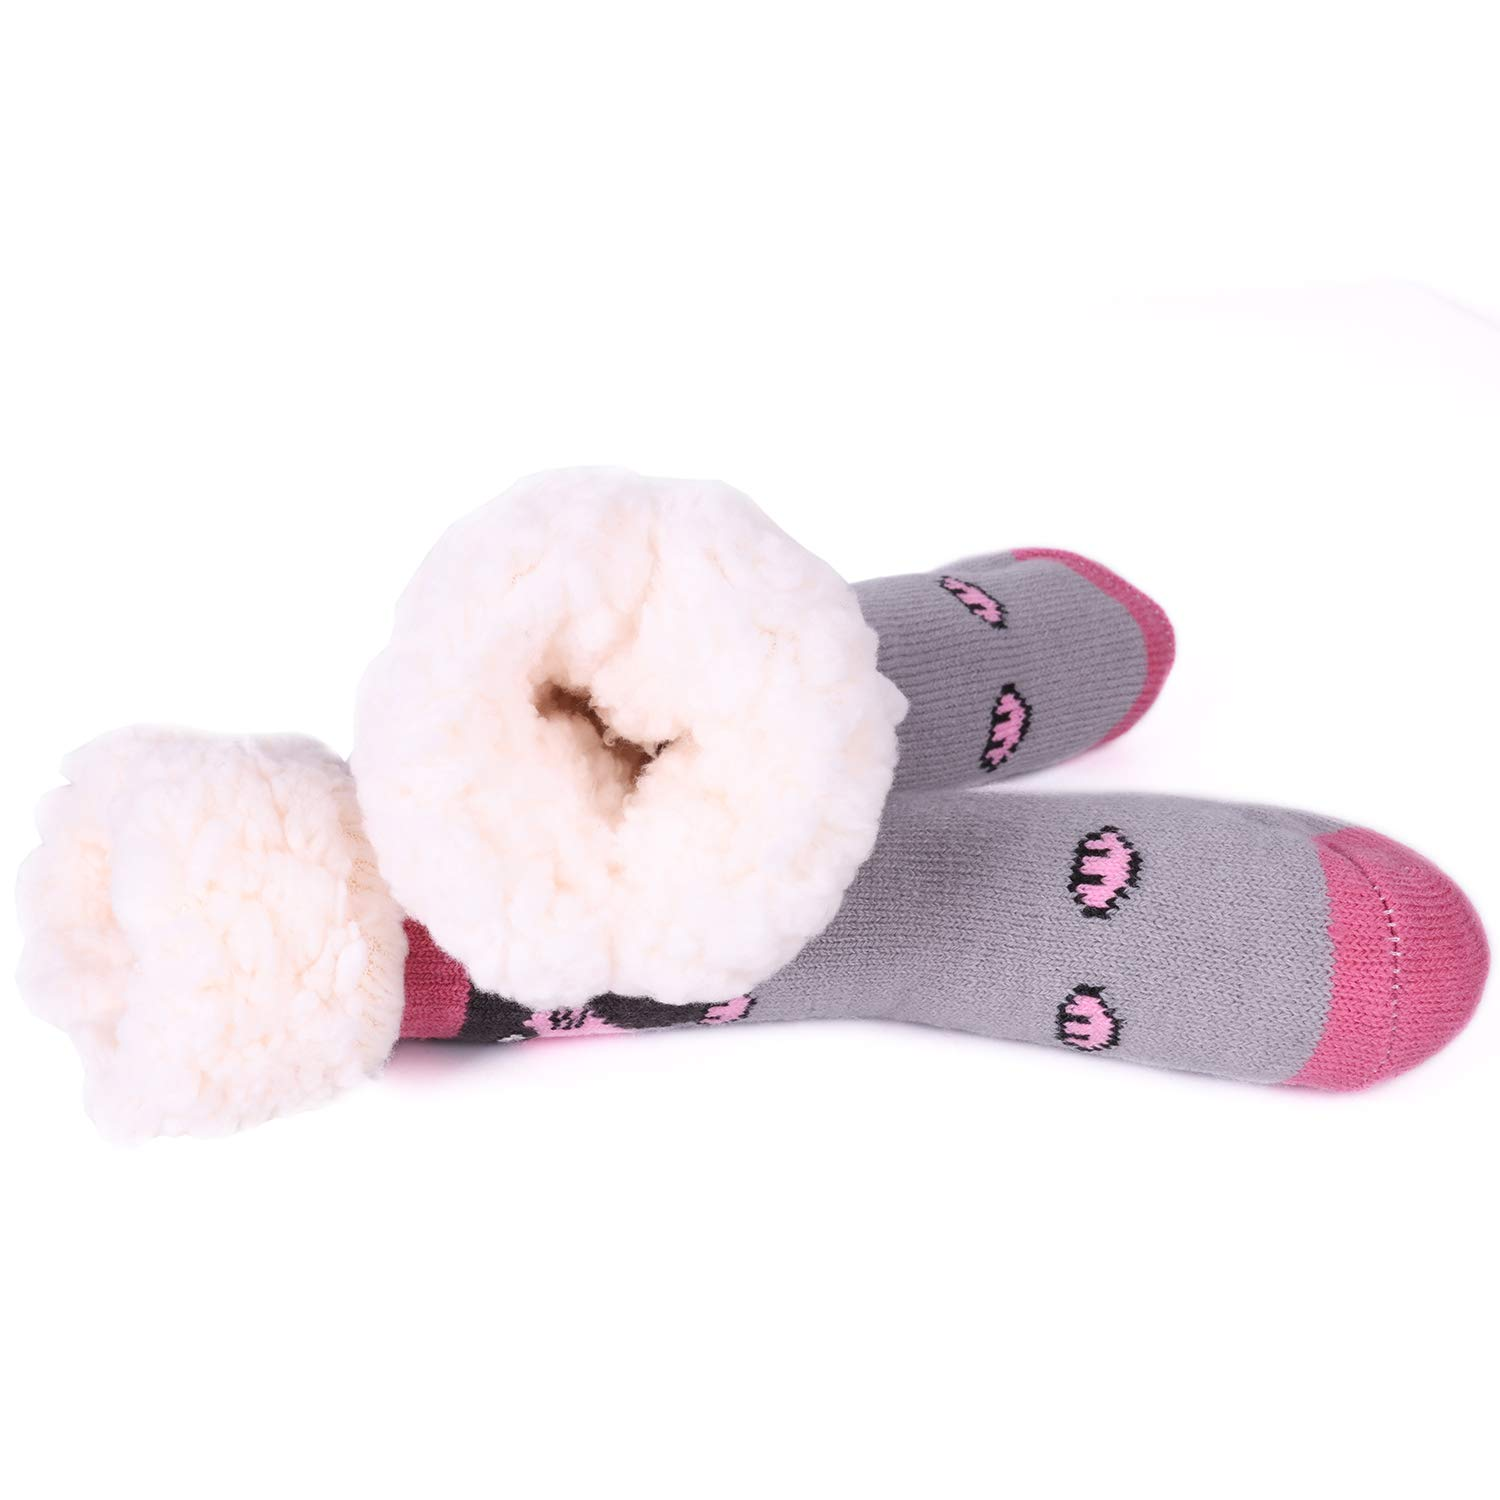 Toddler Baby Girls Fuzzy Slipper Socks Fleece Lined Cozy Winter Cute Funny Thermal Warm Home Socks Non Skid Booties